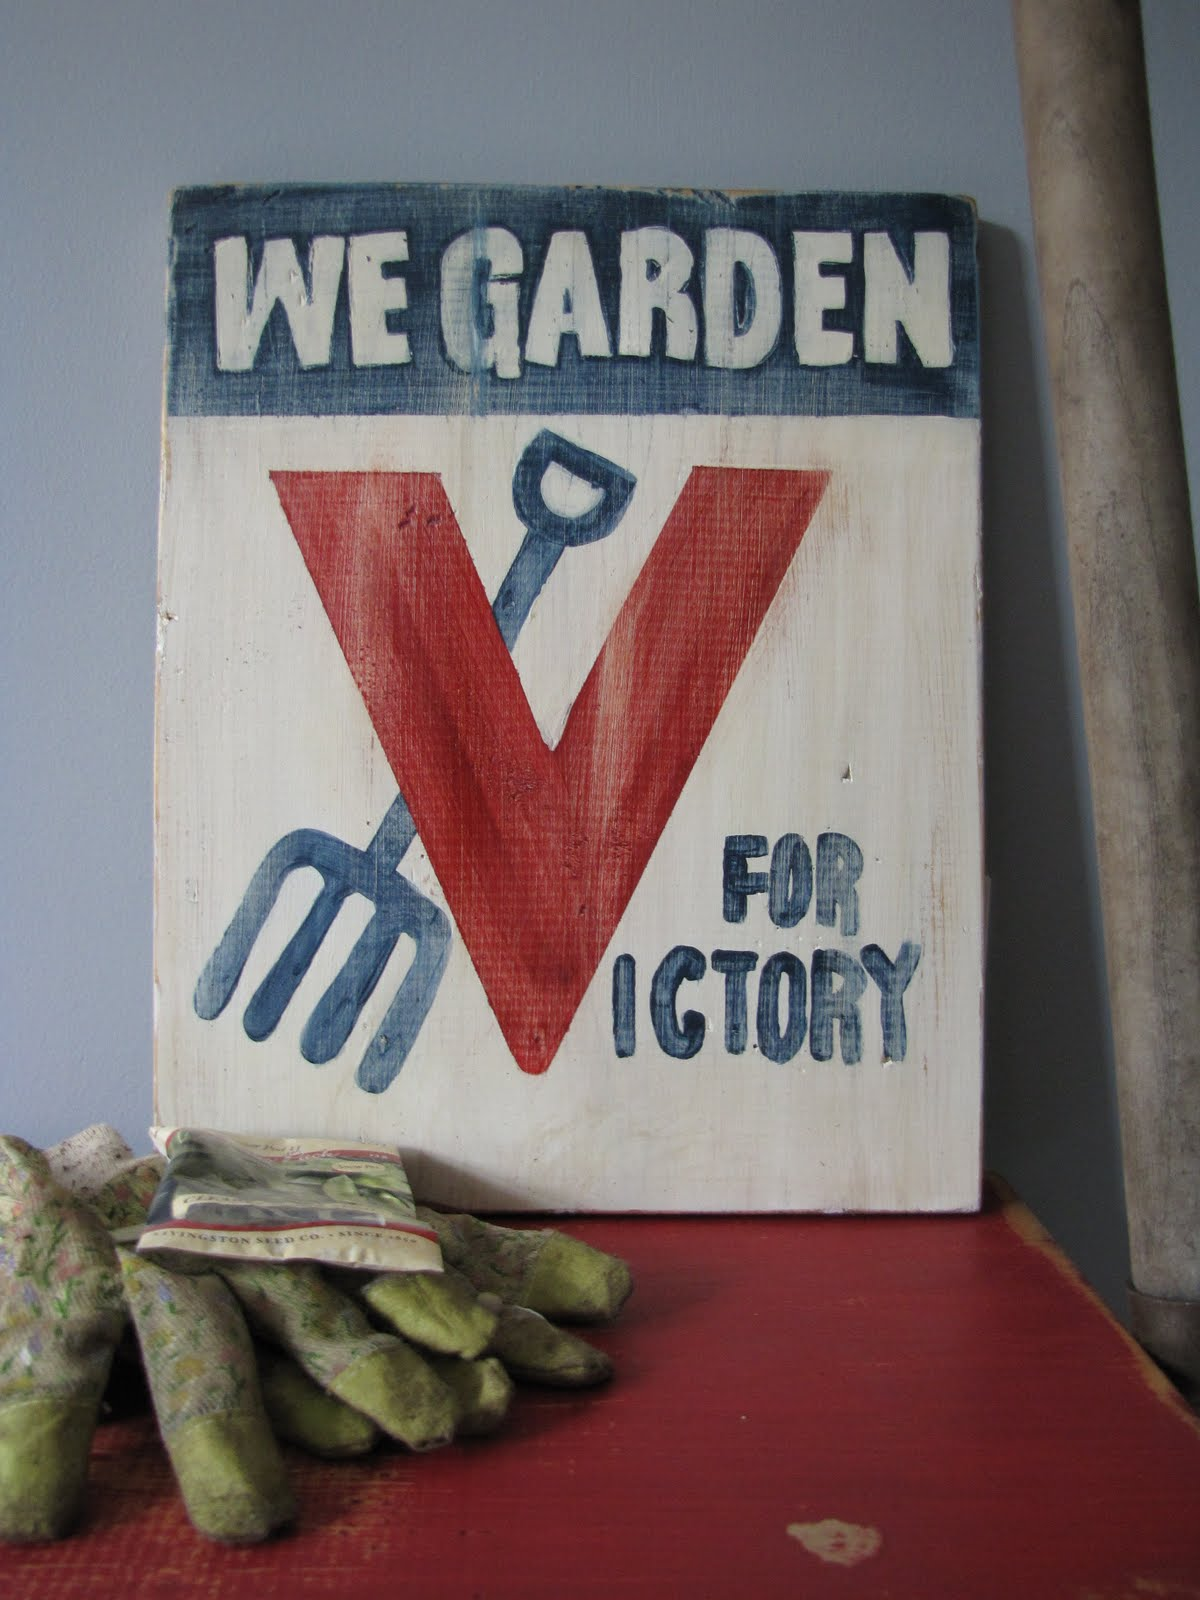 A Little Of This We Garden For Victory